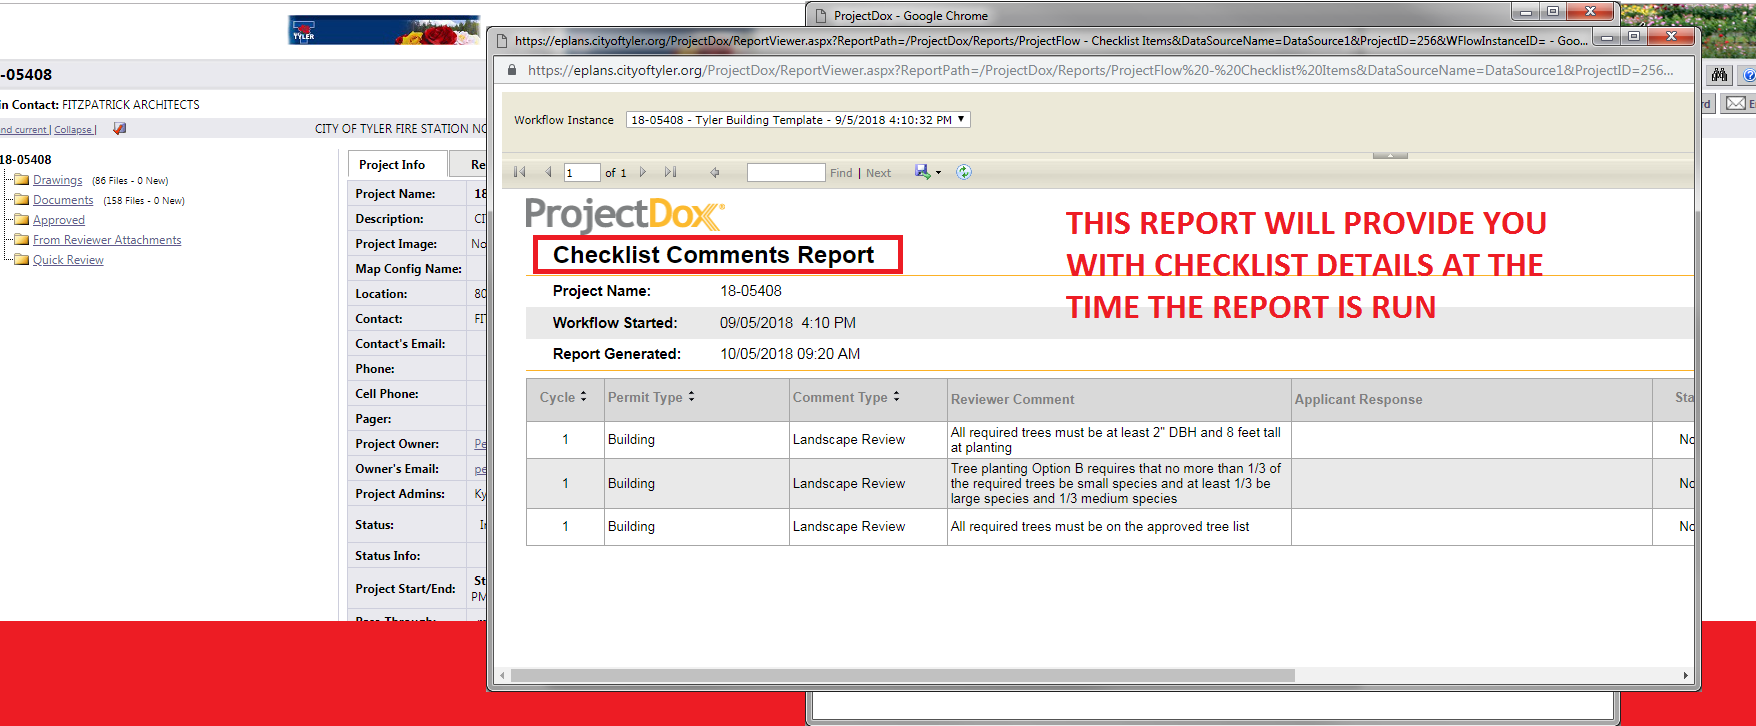 This report will provide you with checklist details at the time the report is run